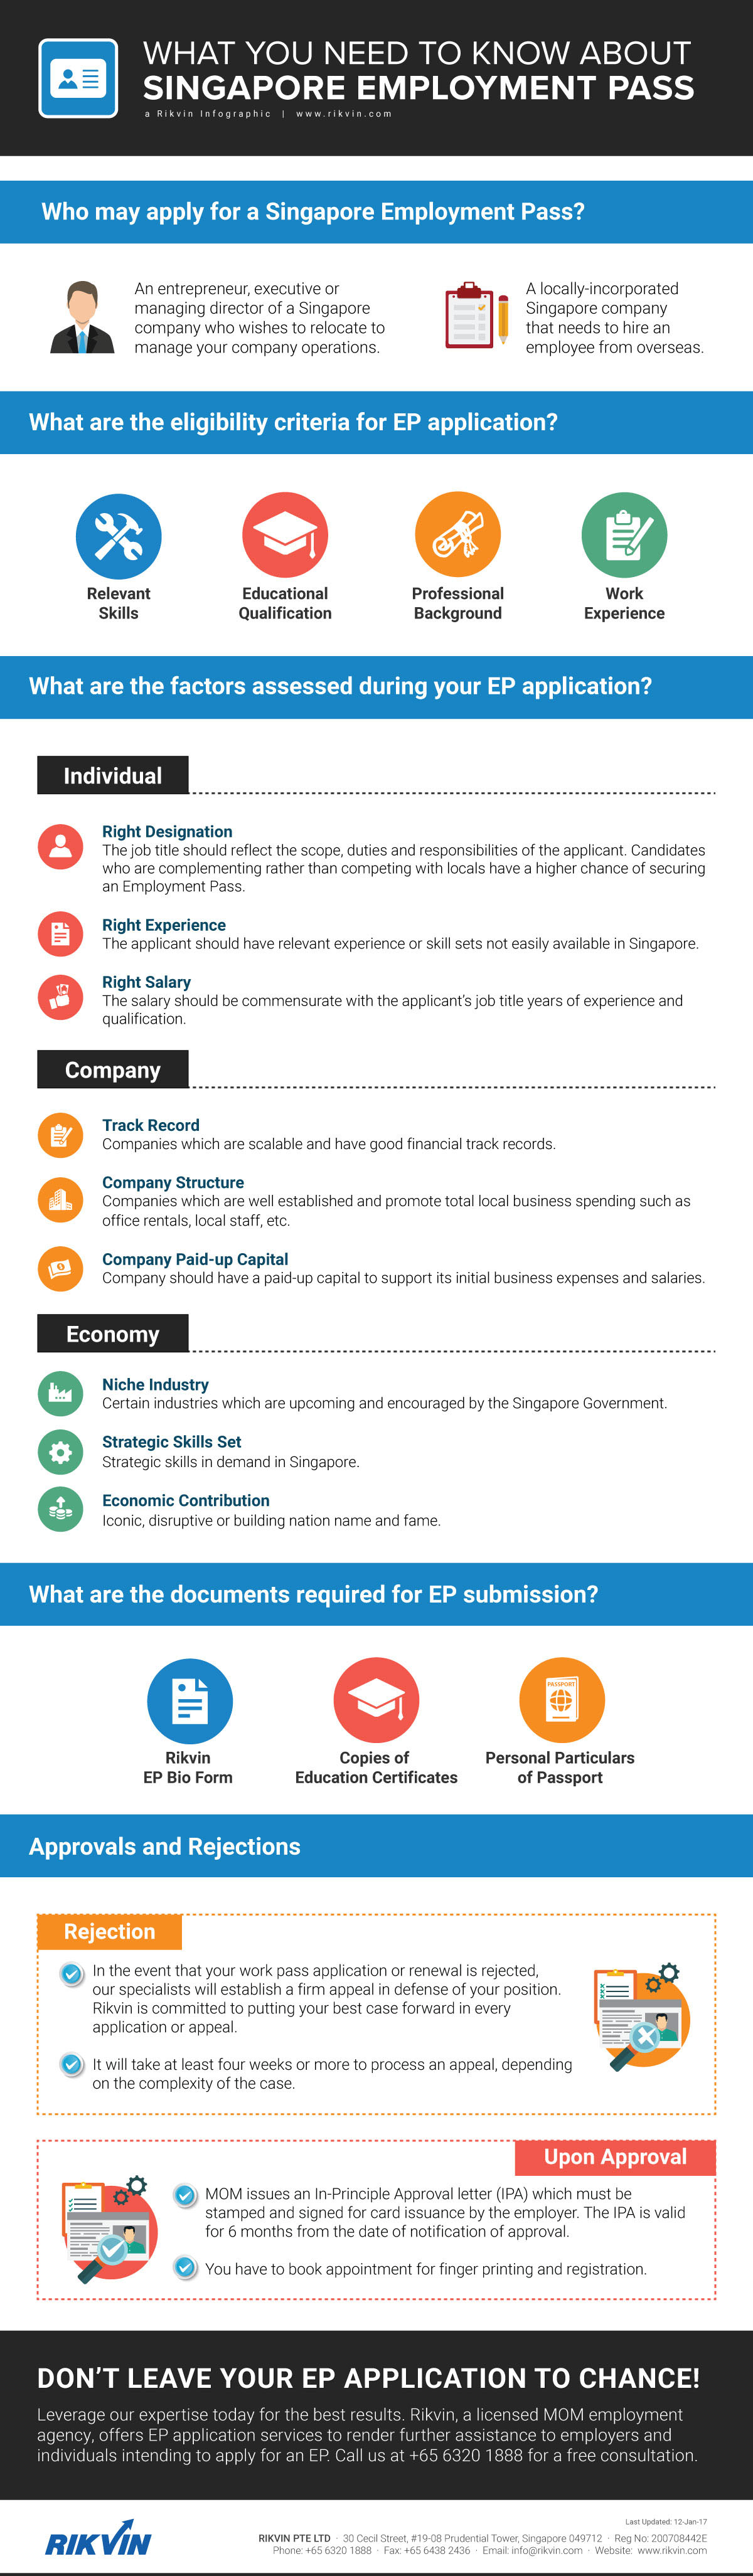 What You Need to Know About Singapore Employment Pass rikvin infographic